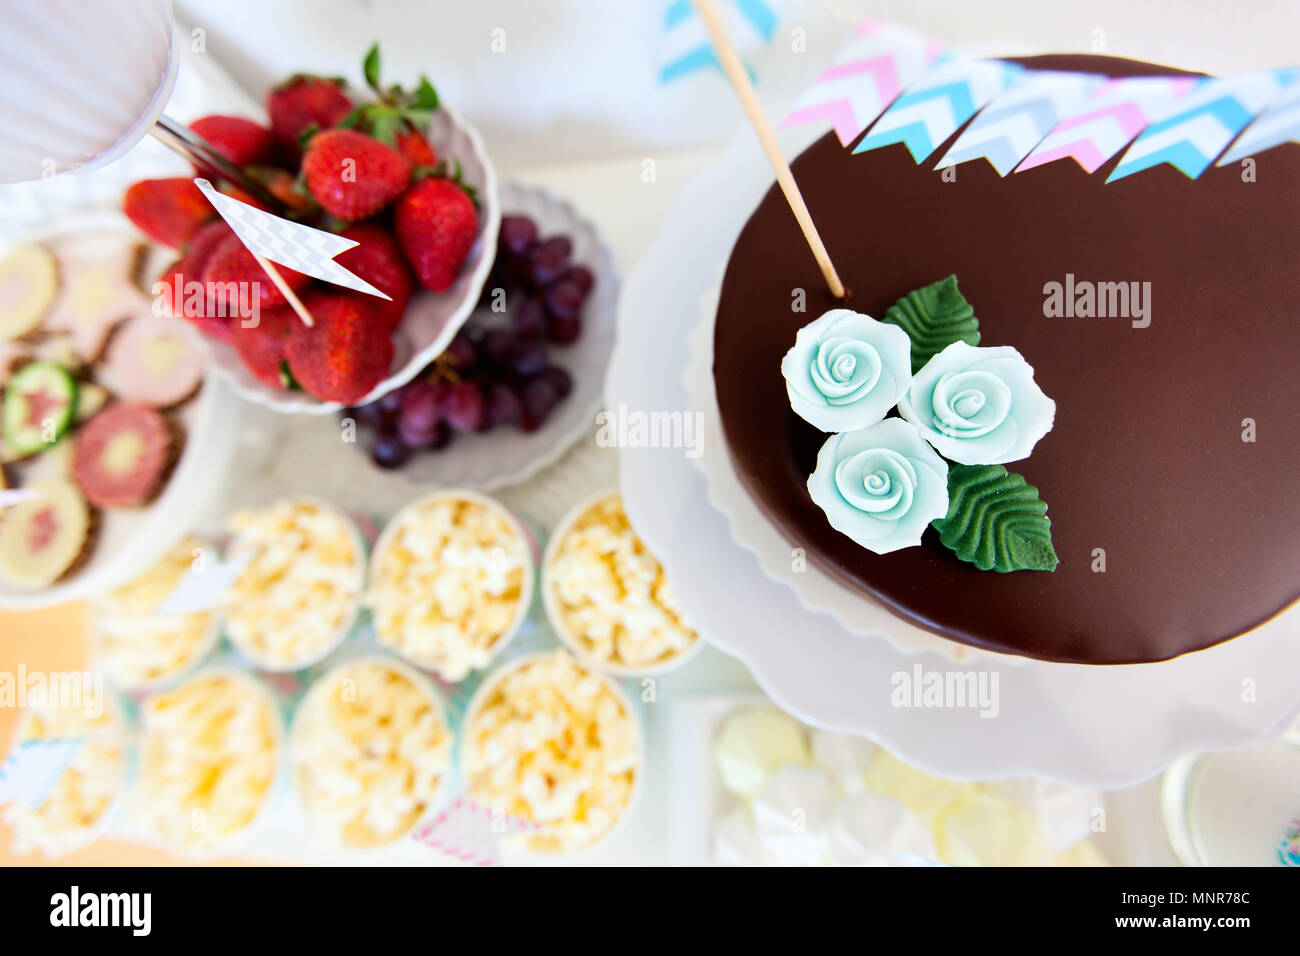 Berries, popcorn, canapes, candies and a chocolate cake on a dessert table at party - Stock Image